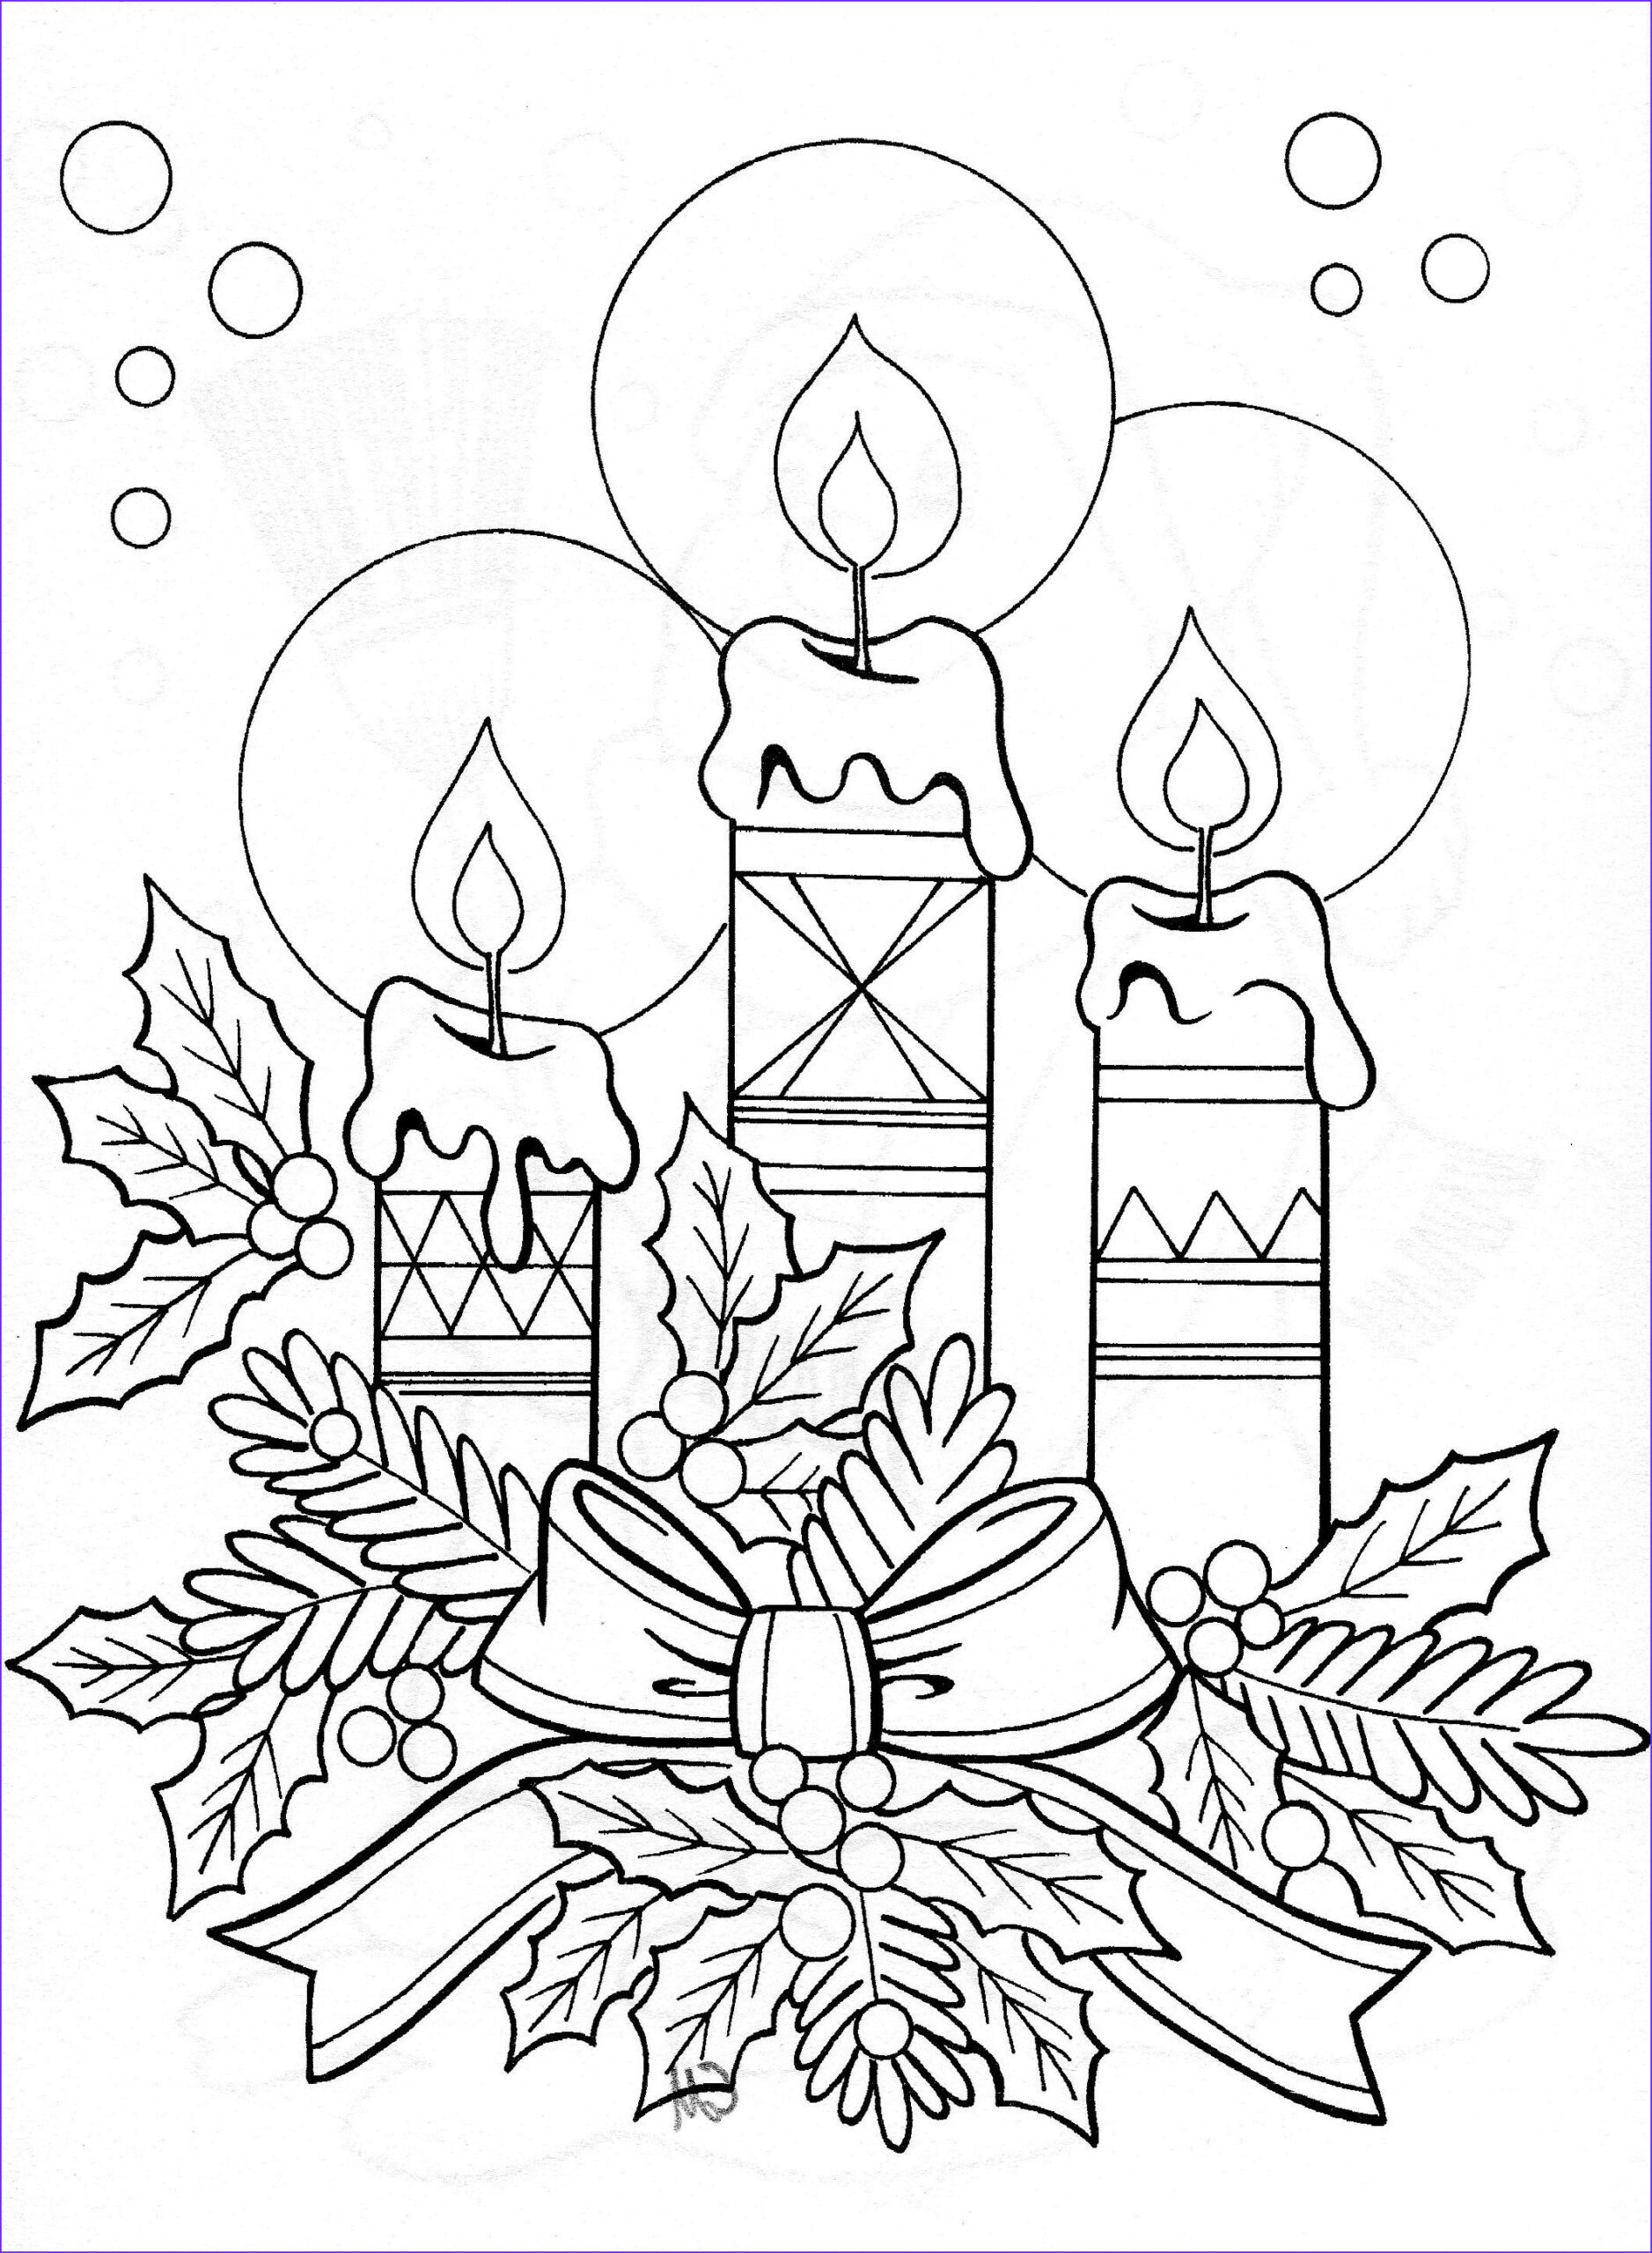 Christmas Coloring Sheets Inspirational Photos Drawing Of Candle Arrangement Christmas